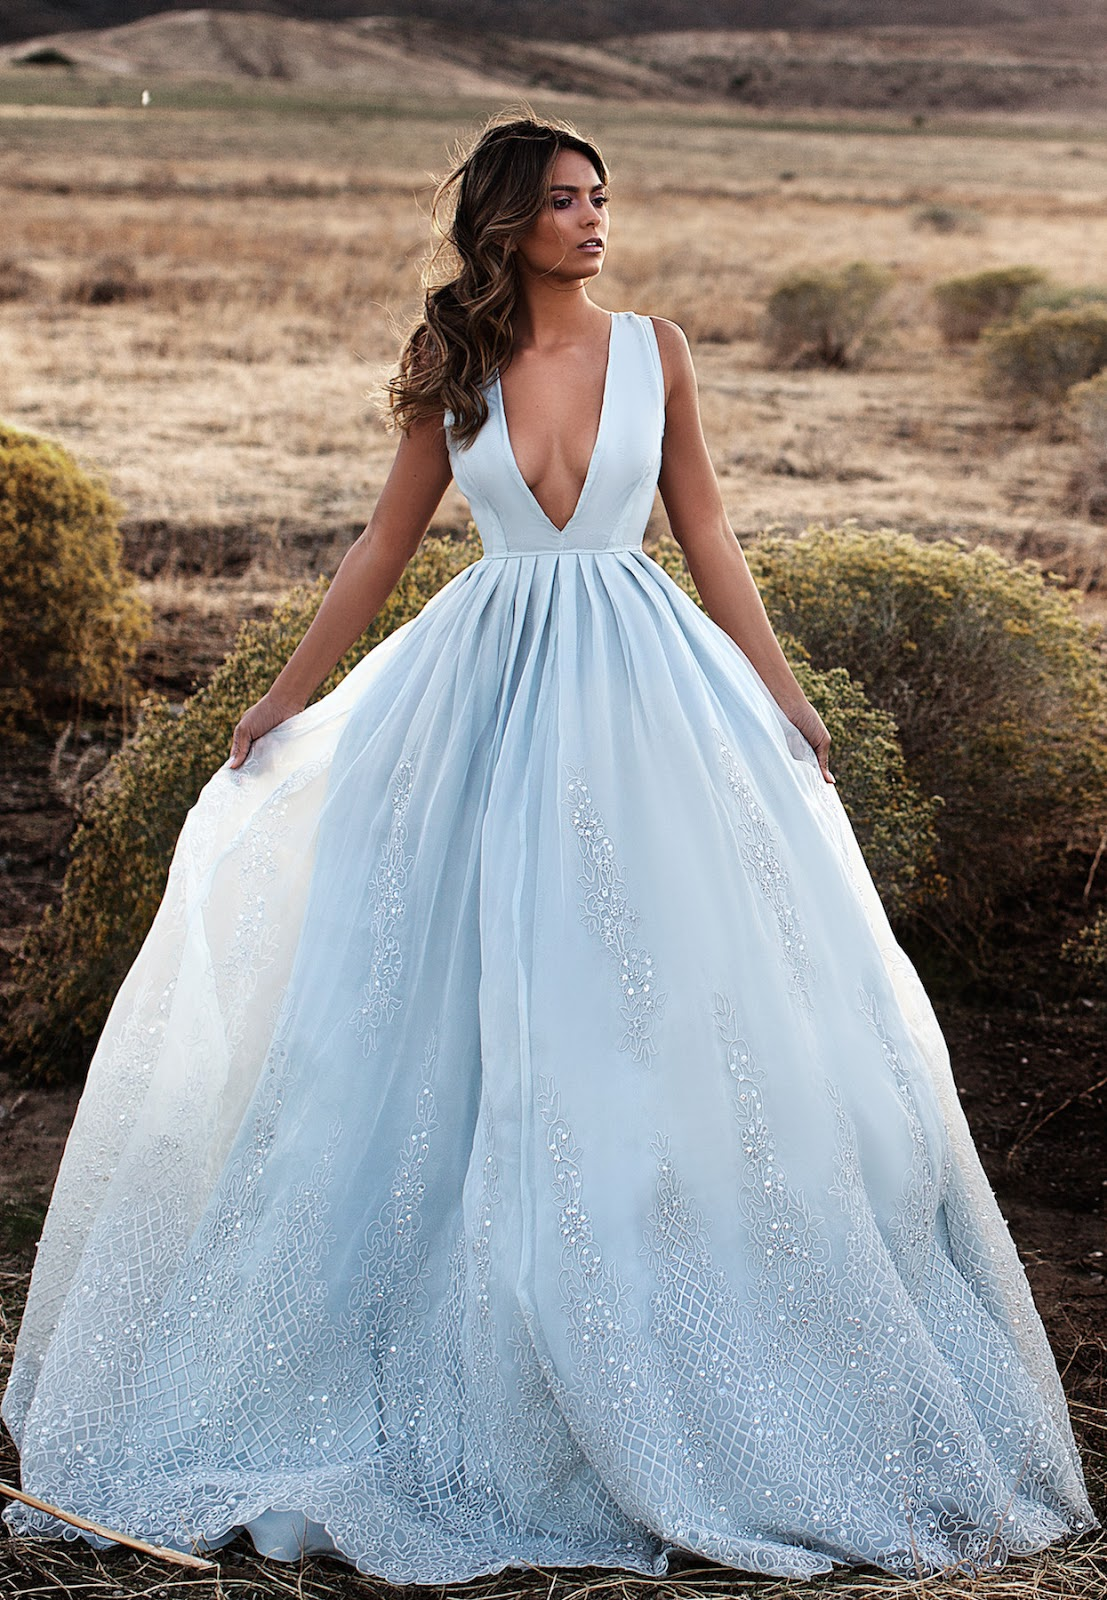 I am a Woman in Love: These Beautiful Wedding Dresses Will Leave You ...